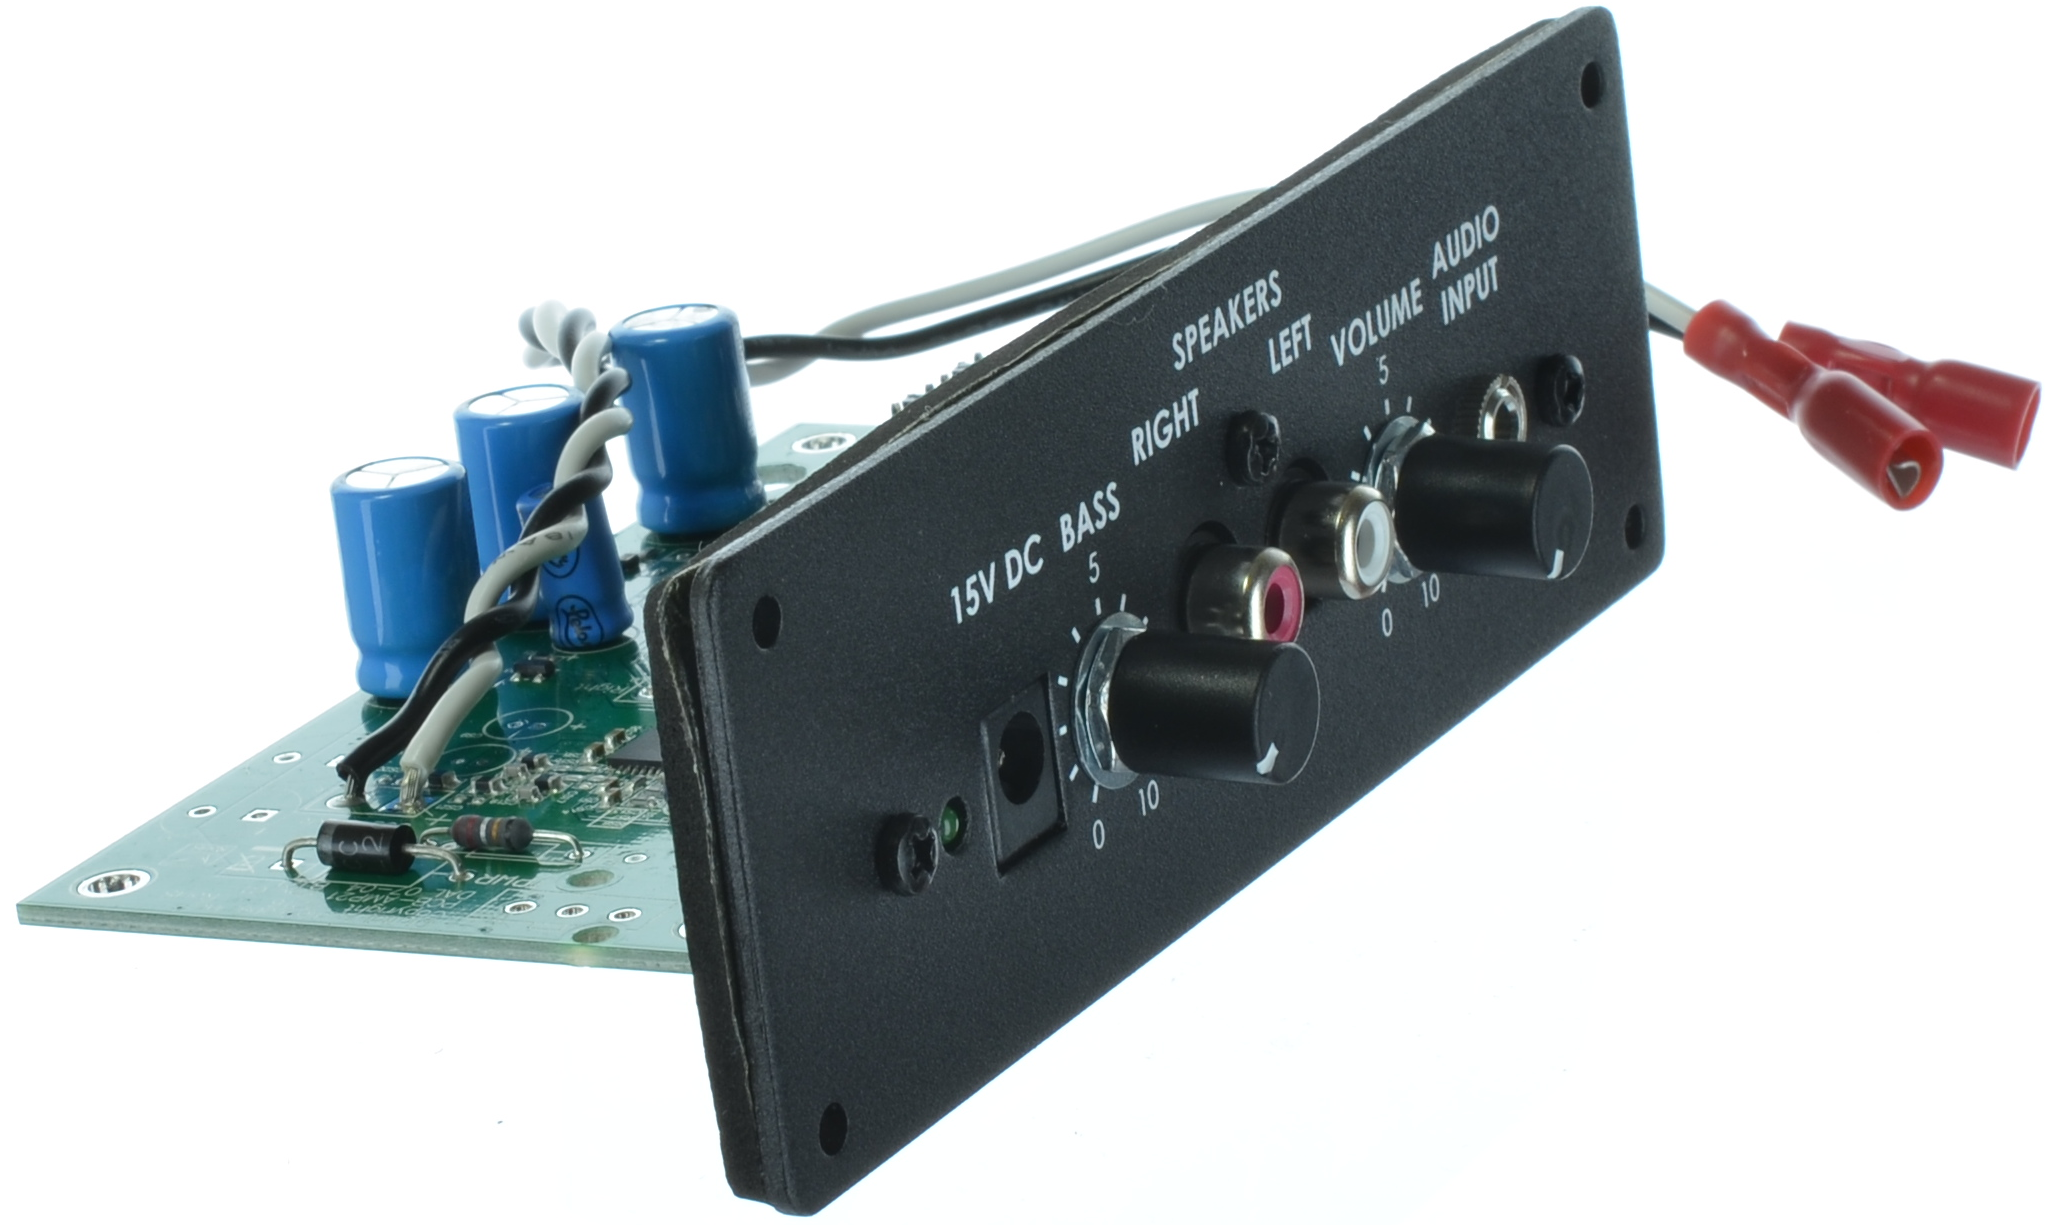 https://store.miscospeakers.com/pub/media/catalog/category/PCB-21AMP.png